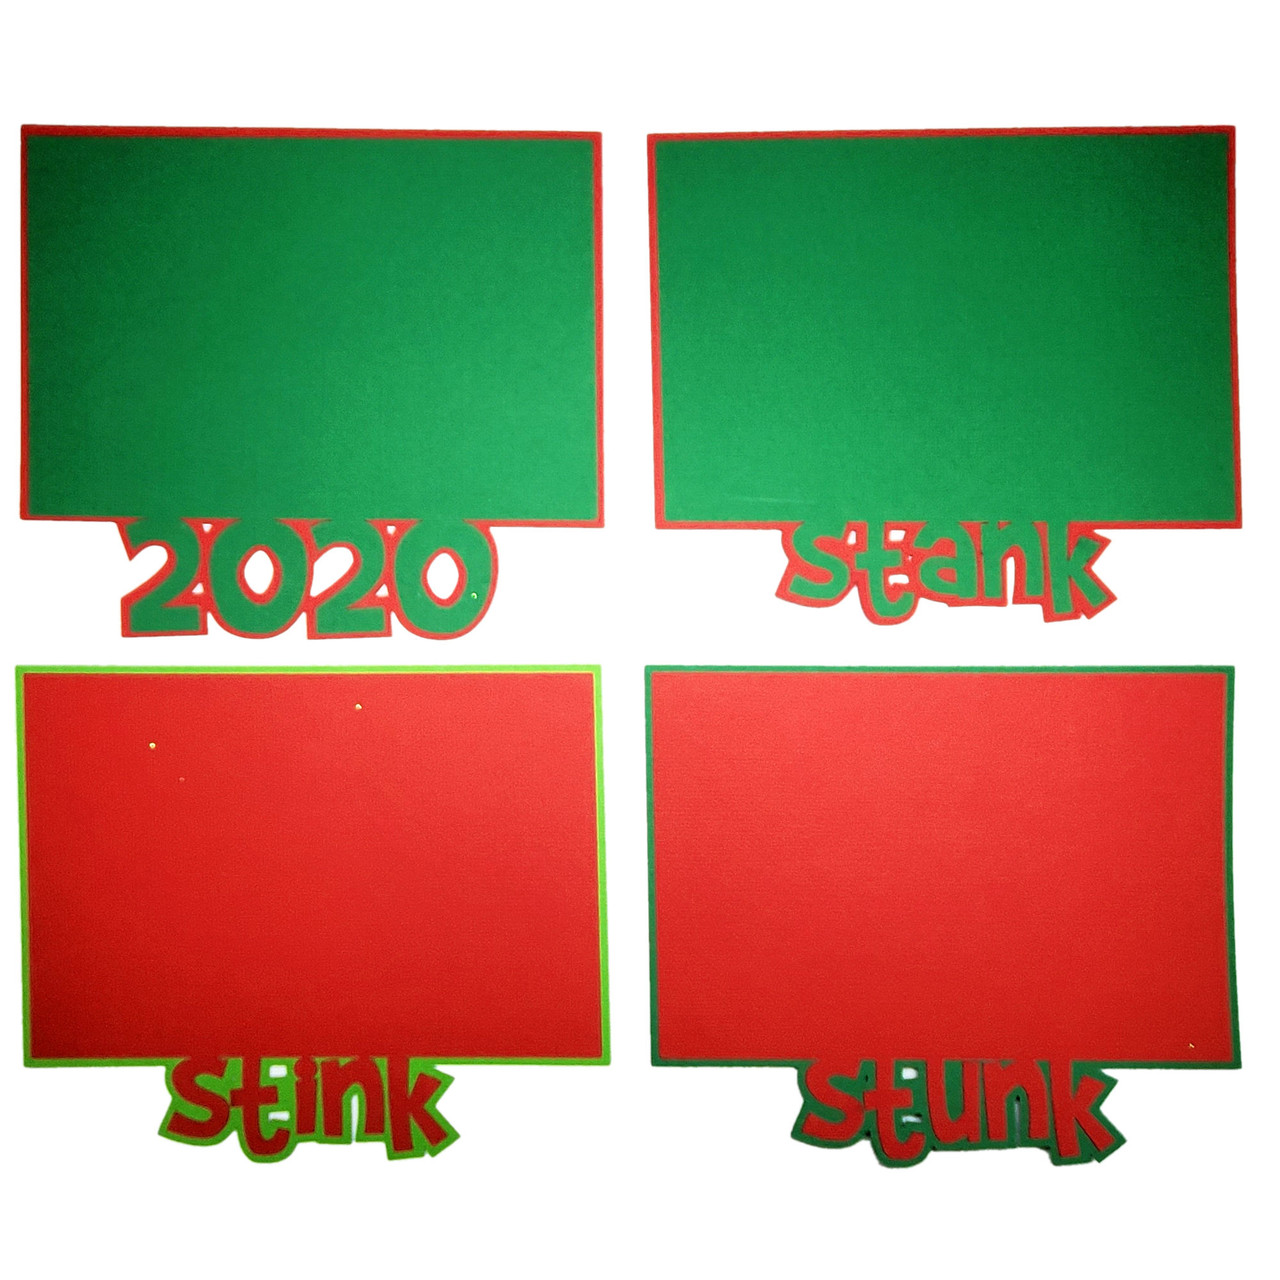 2020 Grinchy Stink, Stank, Stunk Photo Mats Fully-Assembled Laser Cut Scrapbook Embellishment by SSC Laser Designs